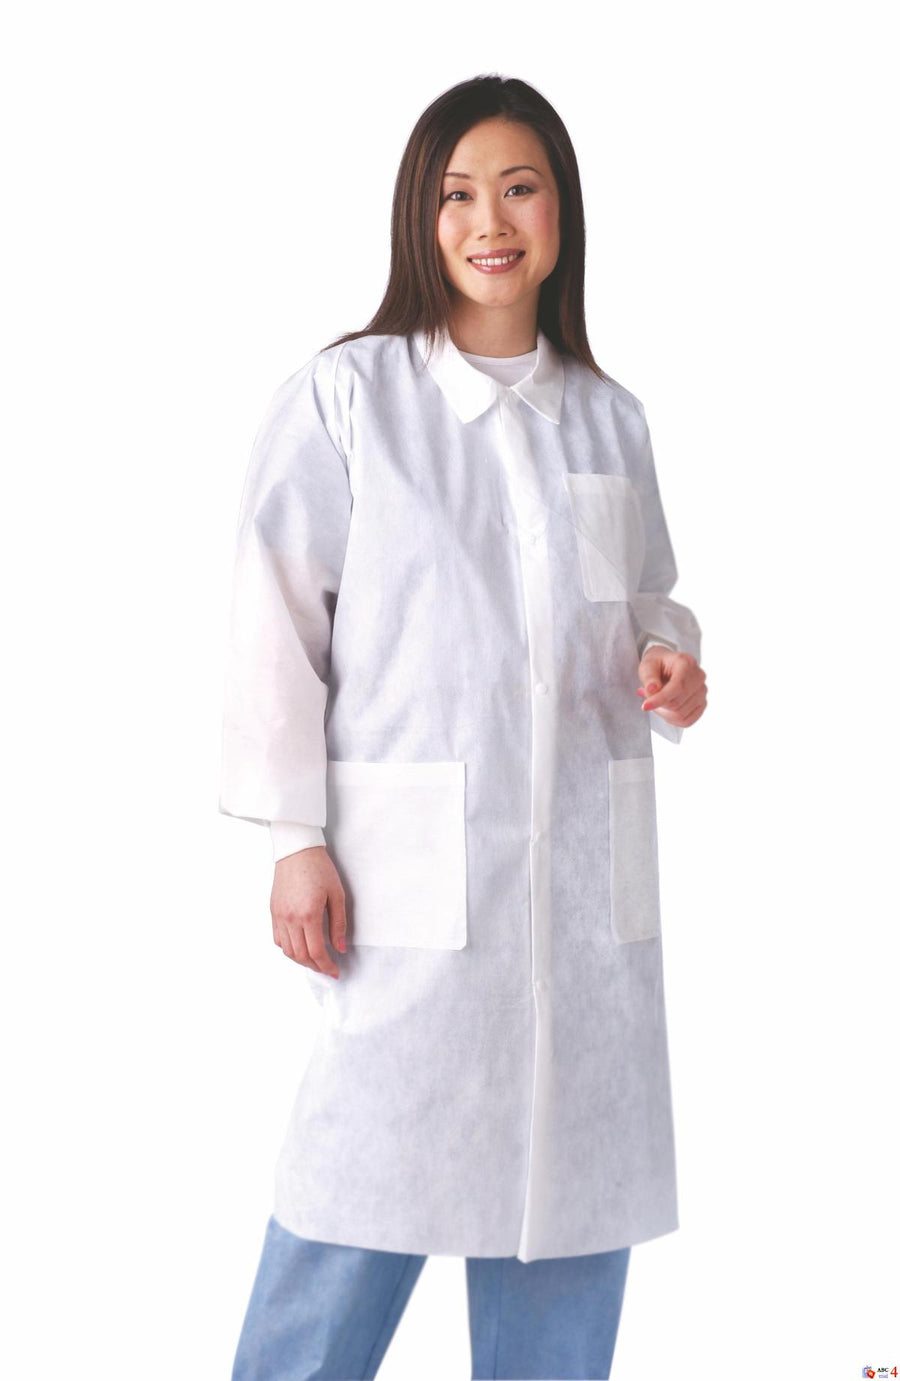 Disposable Knit Cuff / Traditional Collar Multi-Layer Lab Coats,White,XL, Case o